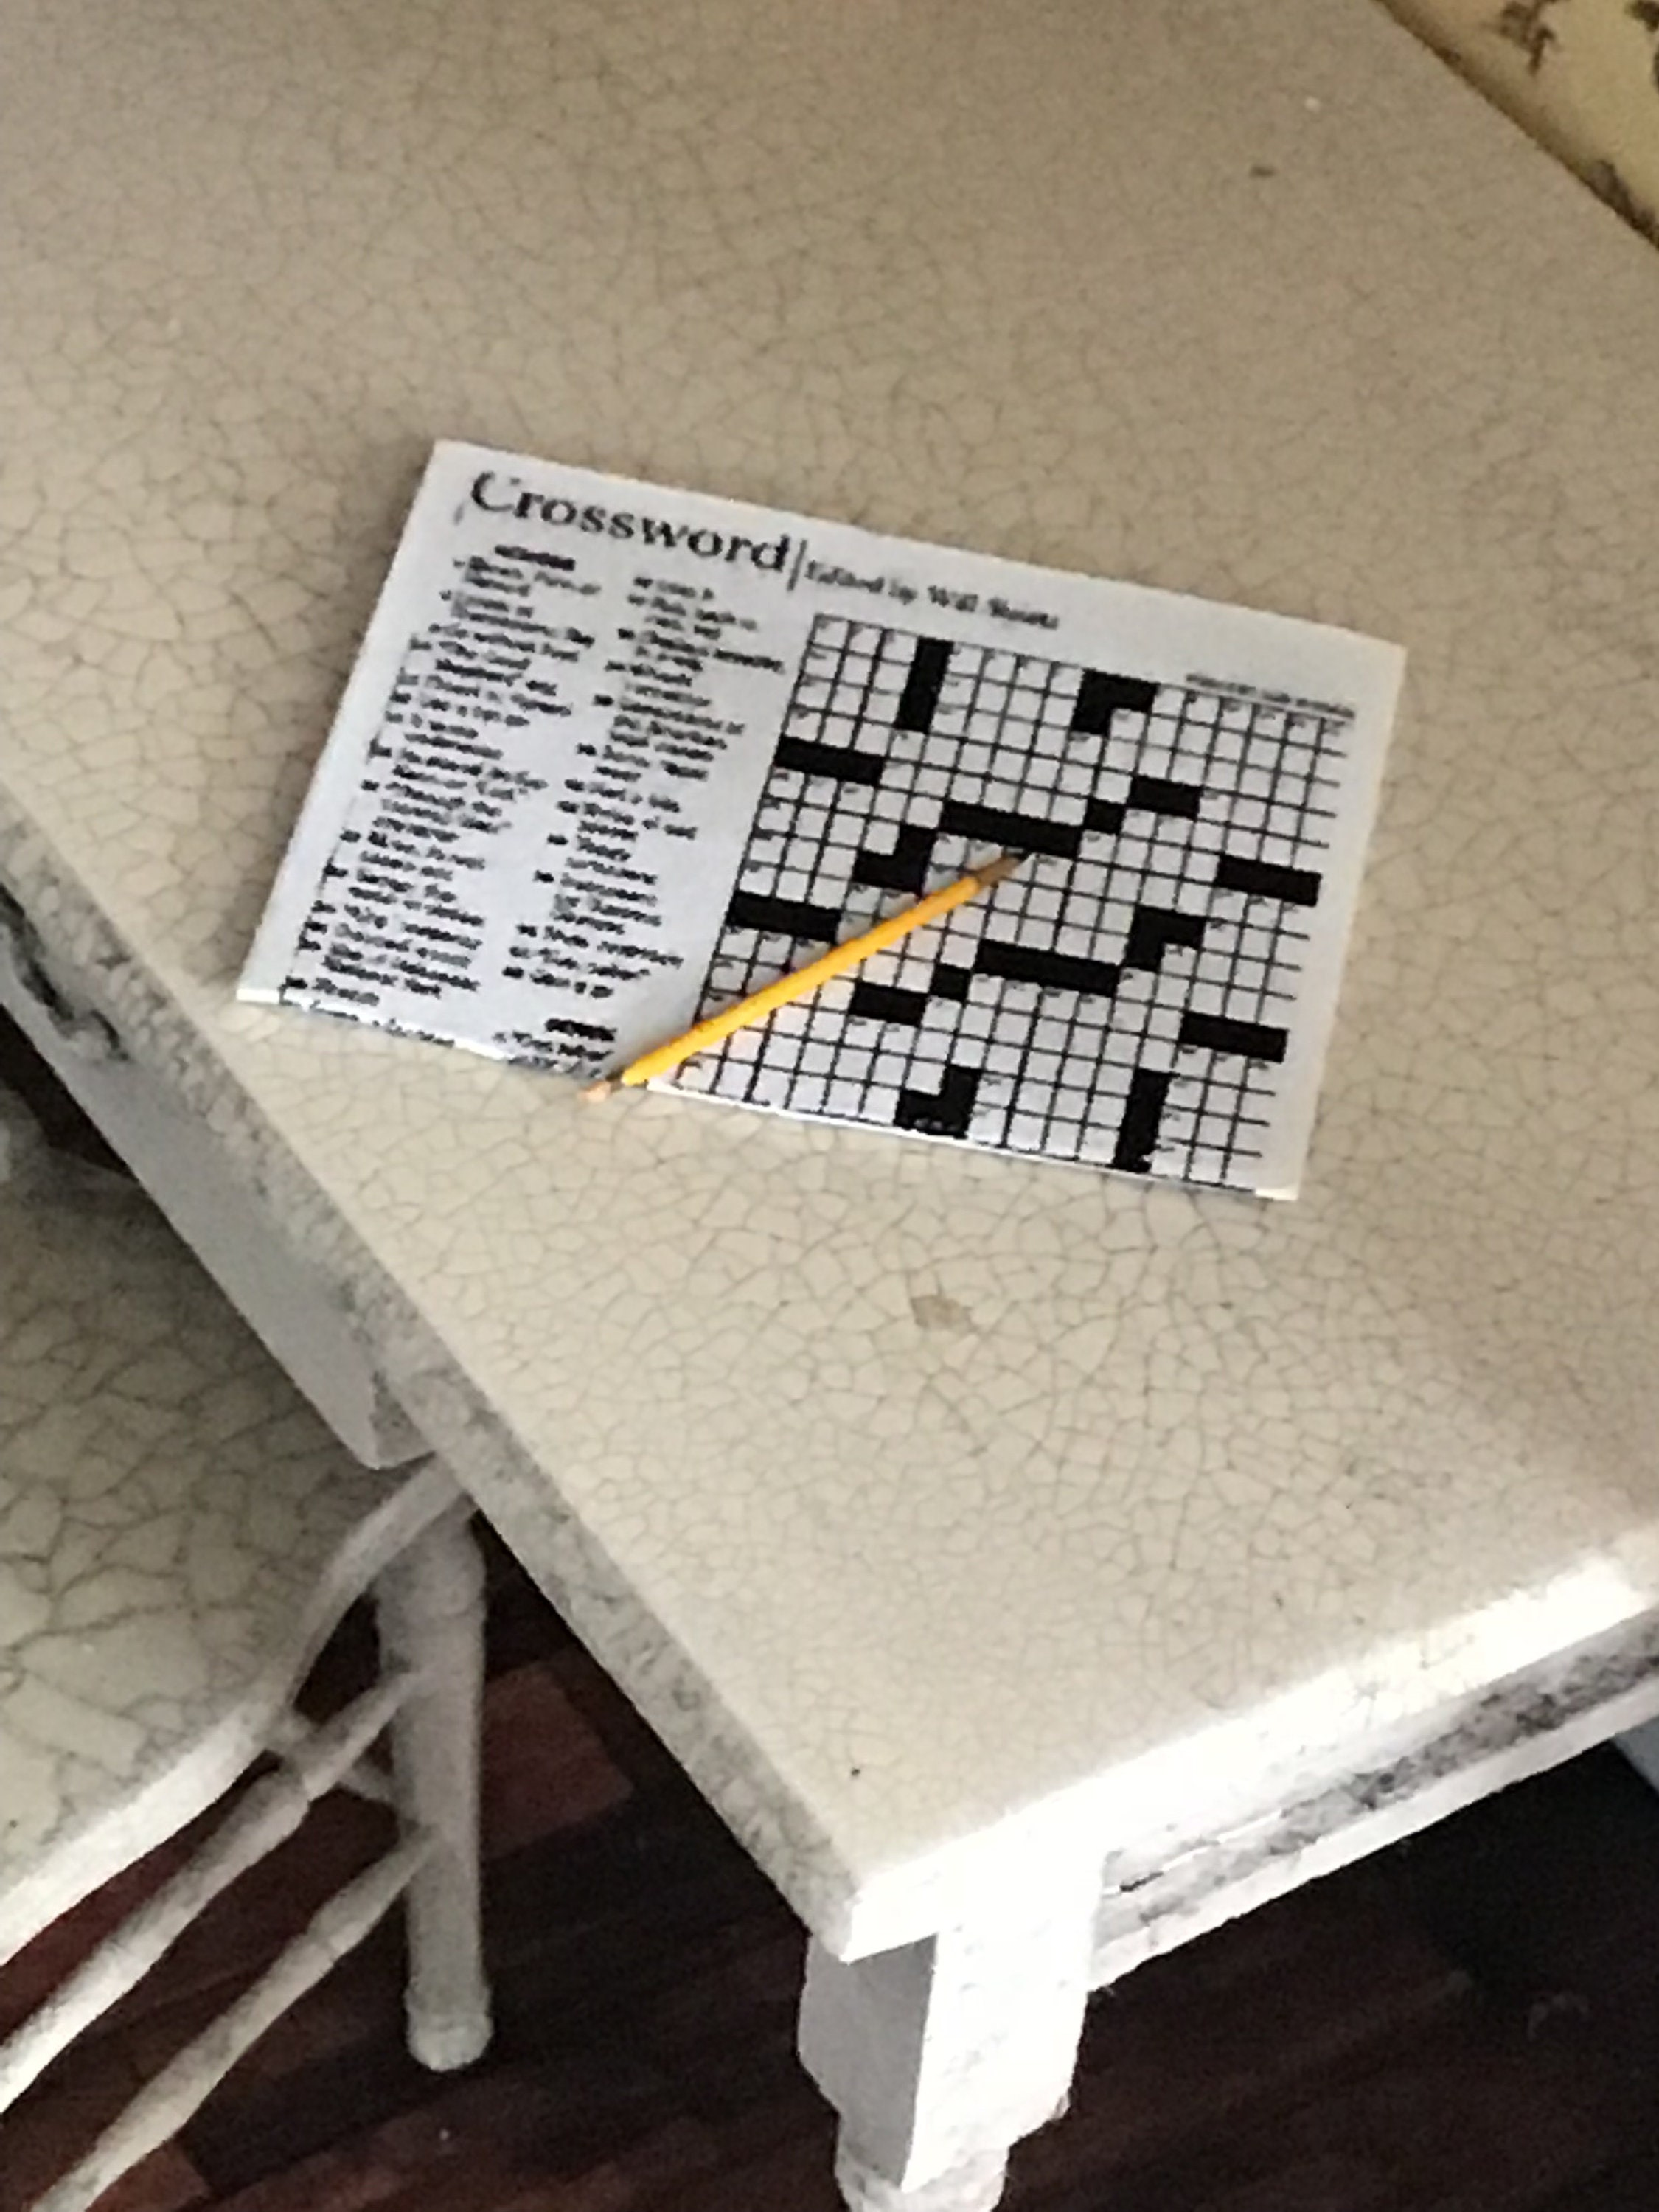 Dollhouse Miniature Newspaper with Crossword Puzzle and Pencil